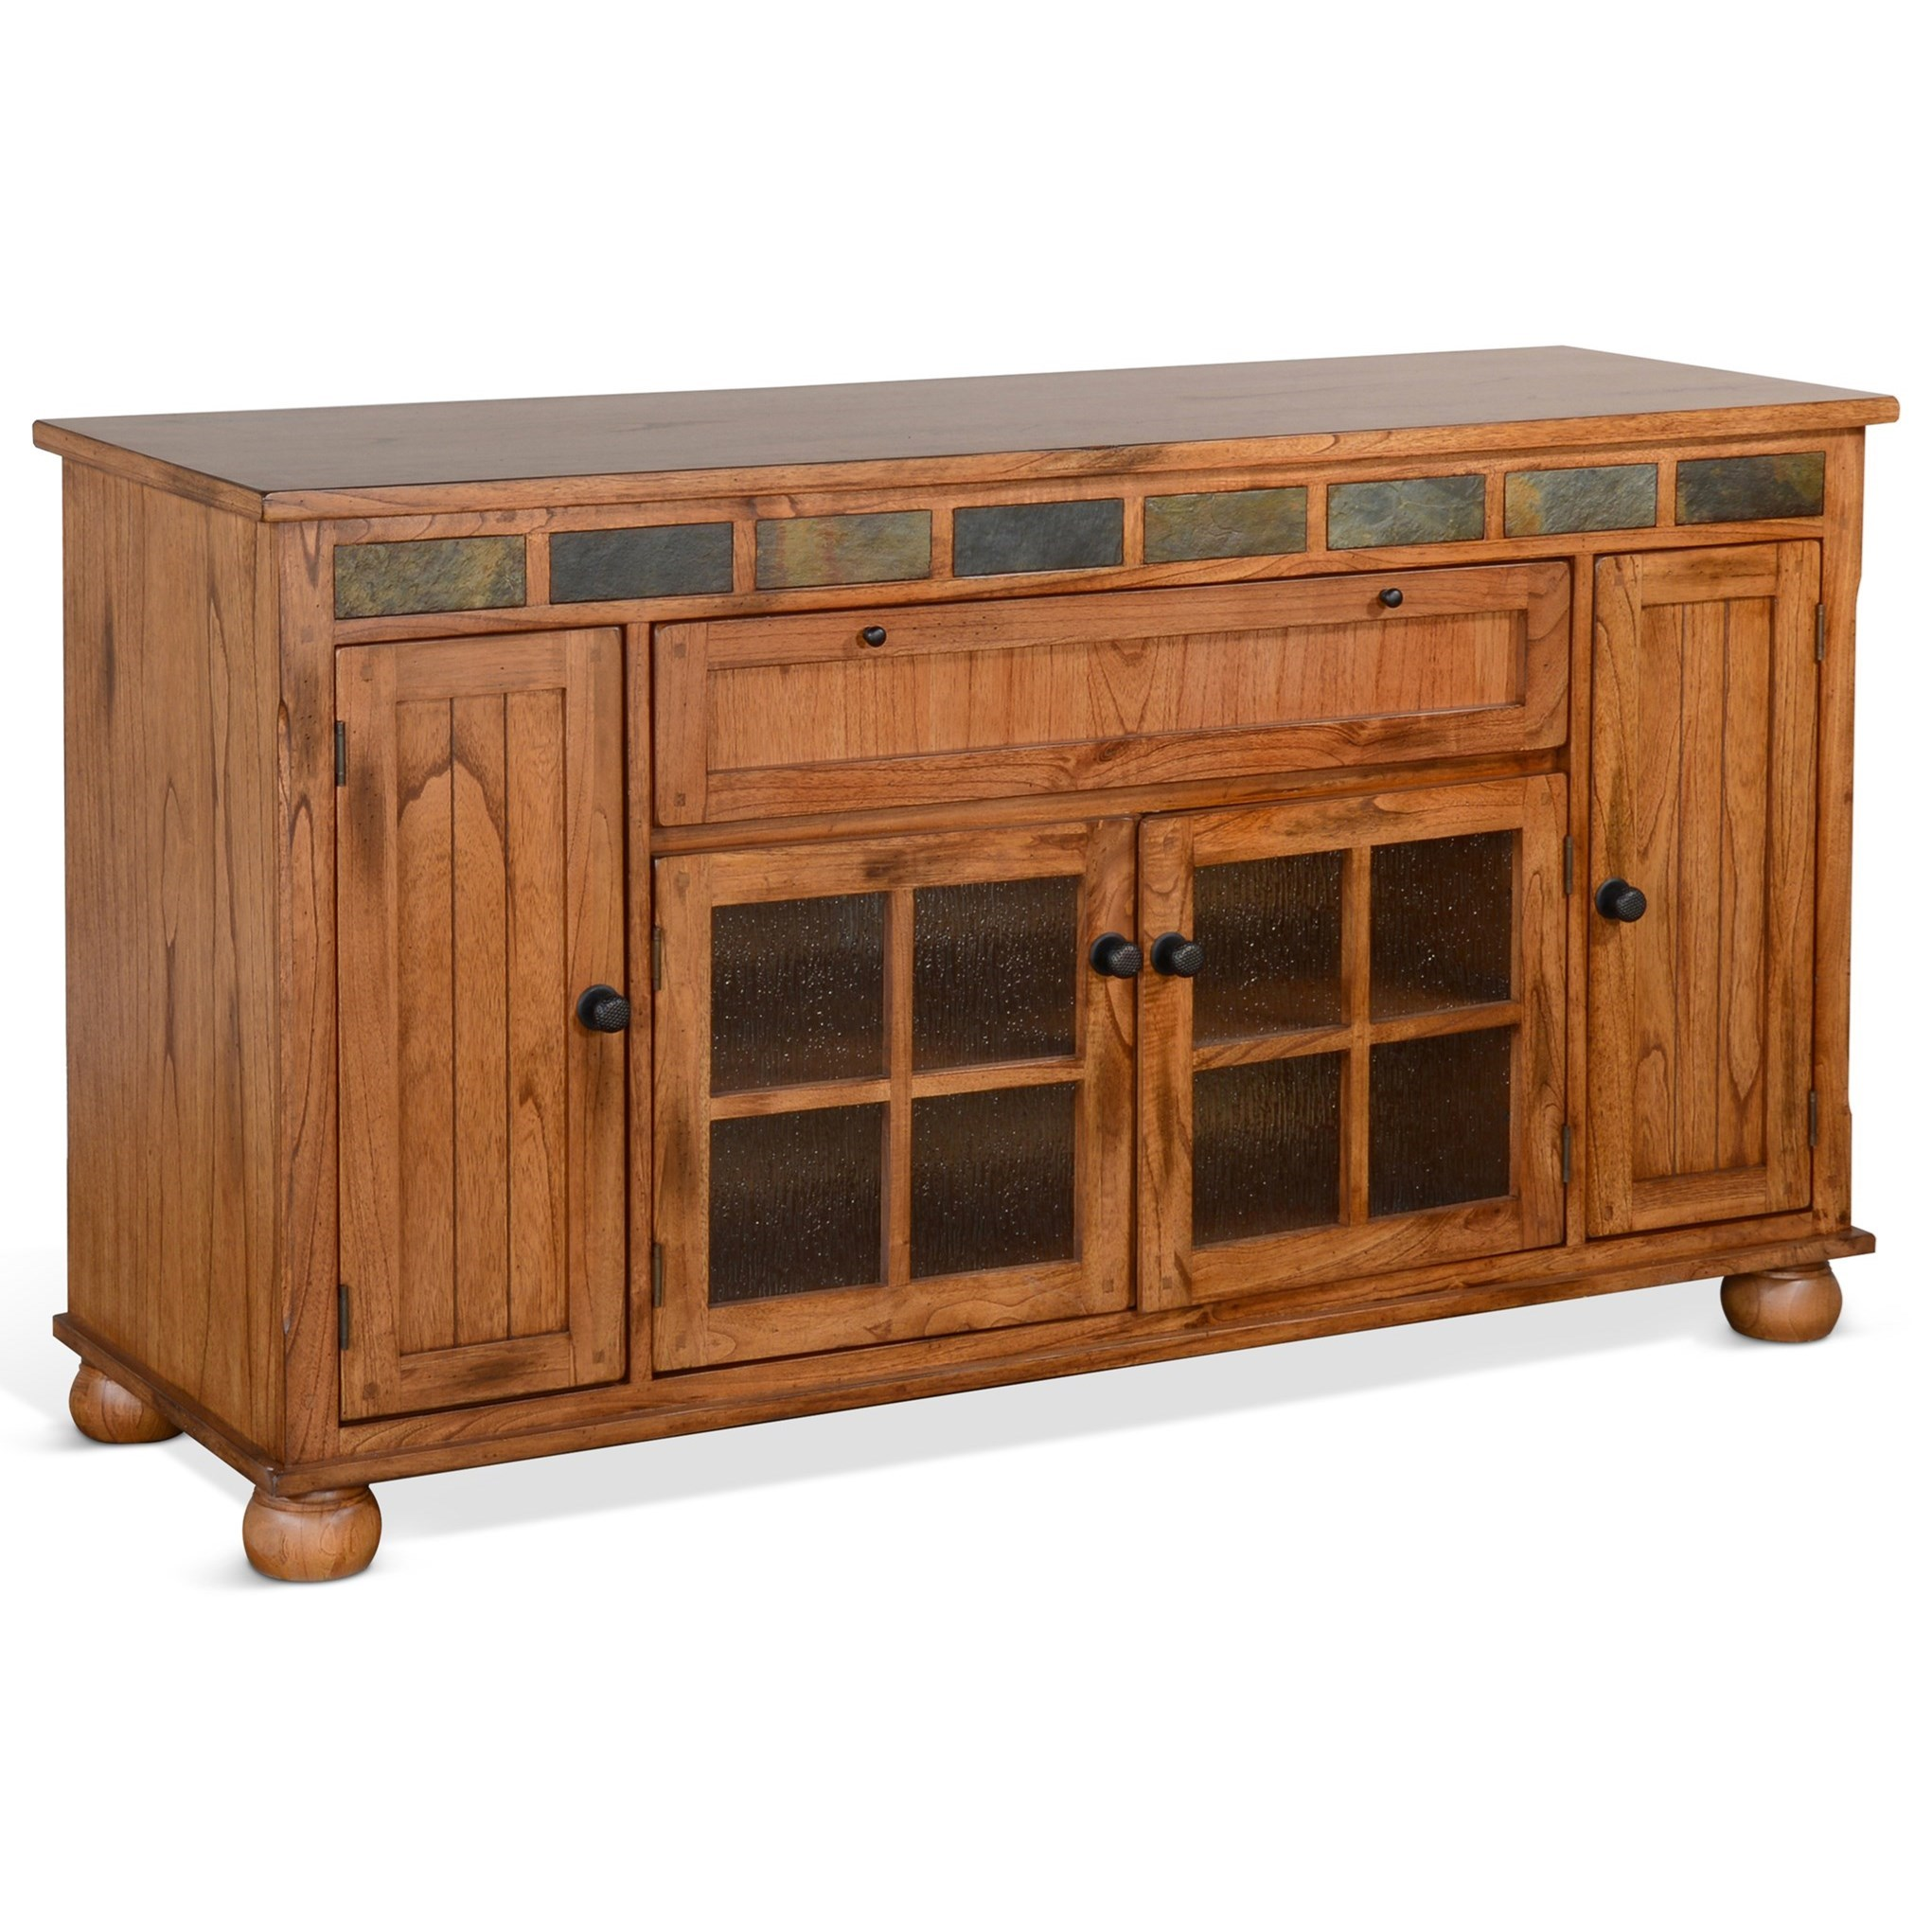 Sedona 2 TV Stand by Sunny Designs at Walker's Furniture